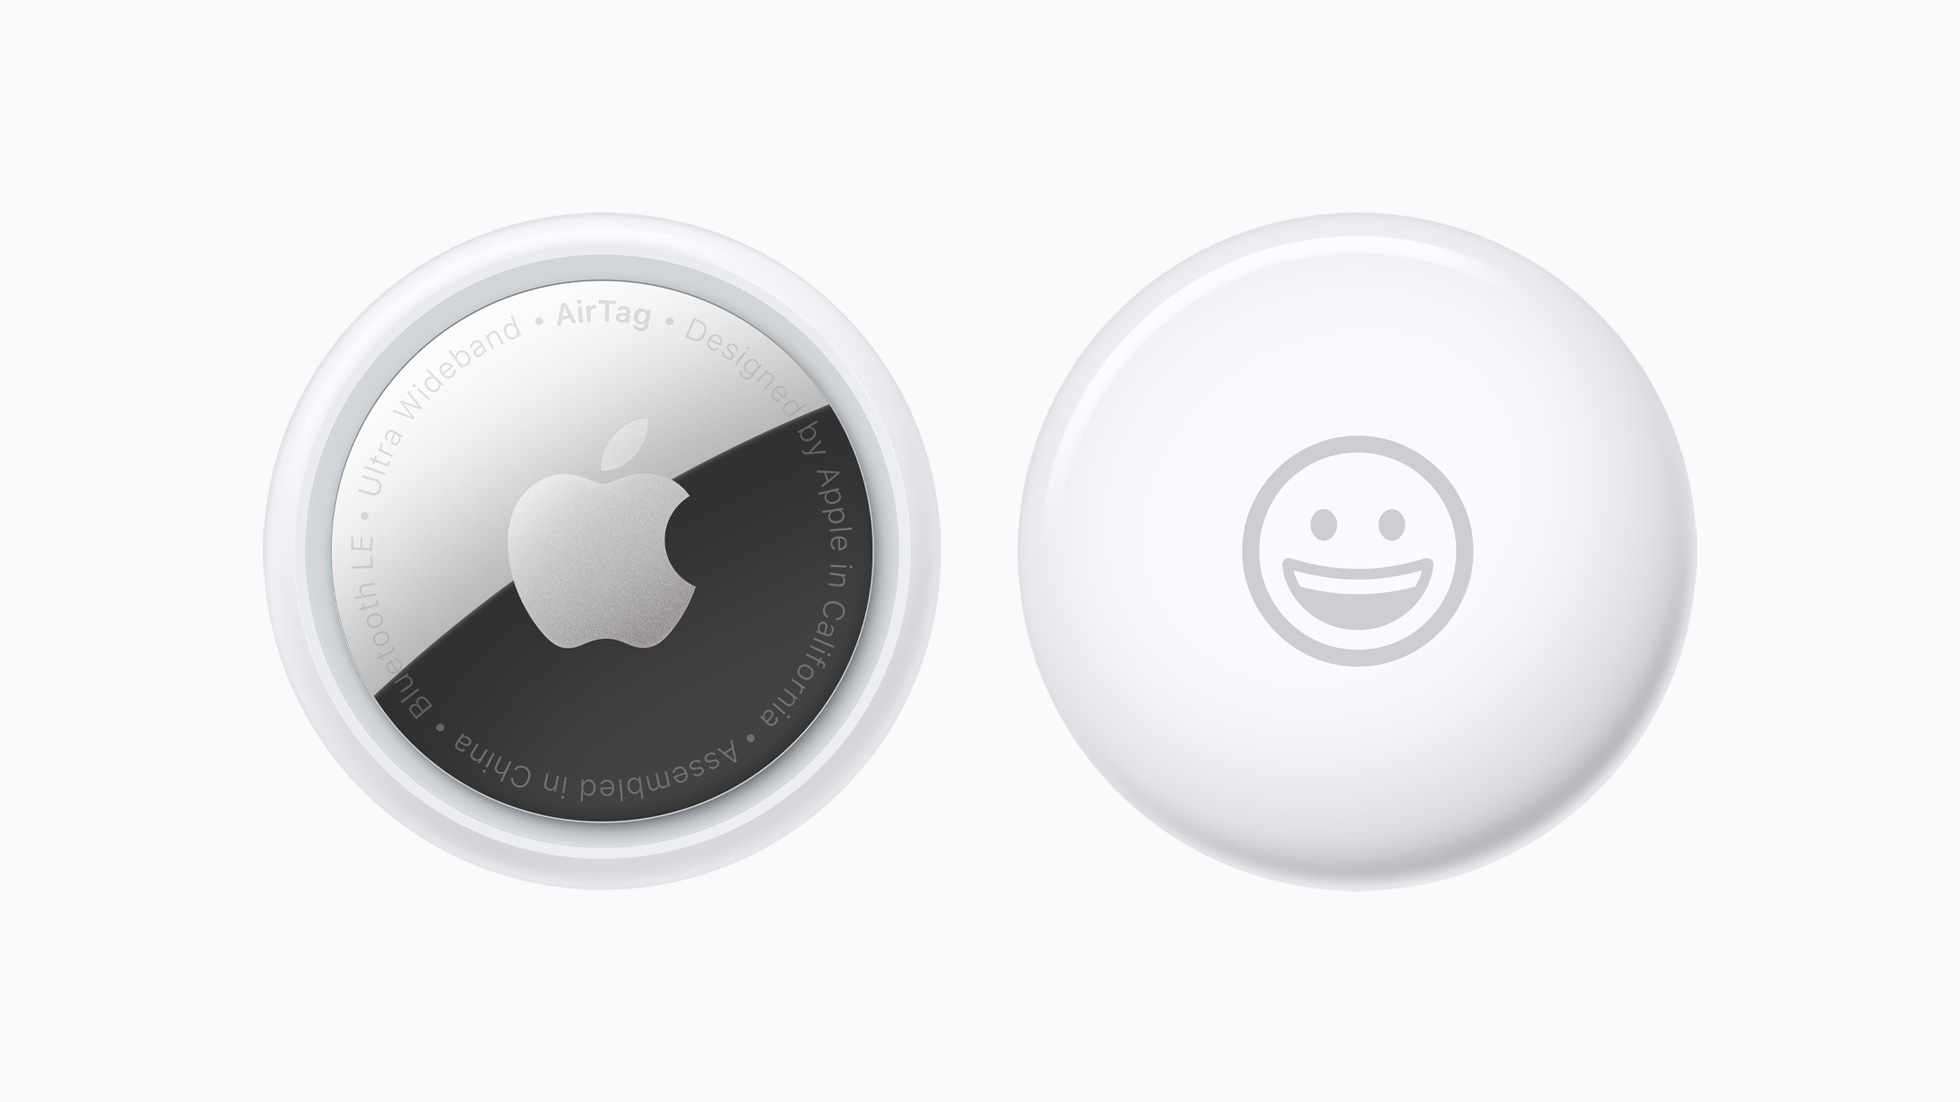 Apple_airtag-front-and-back-emoji-2up_042021.jpg